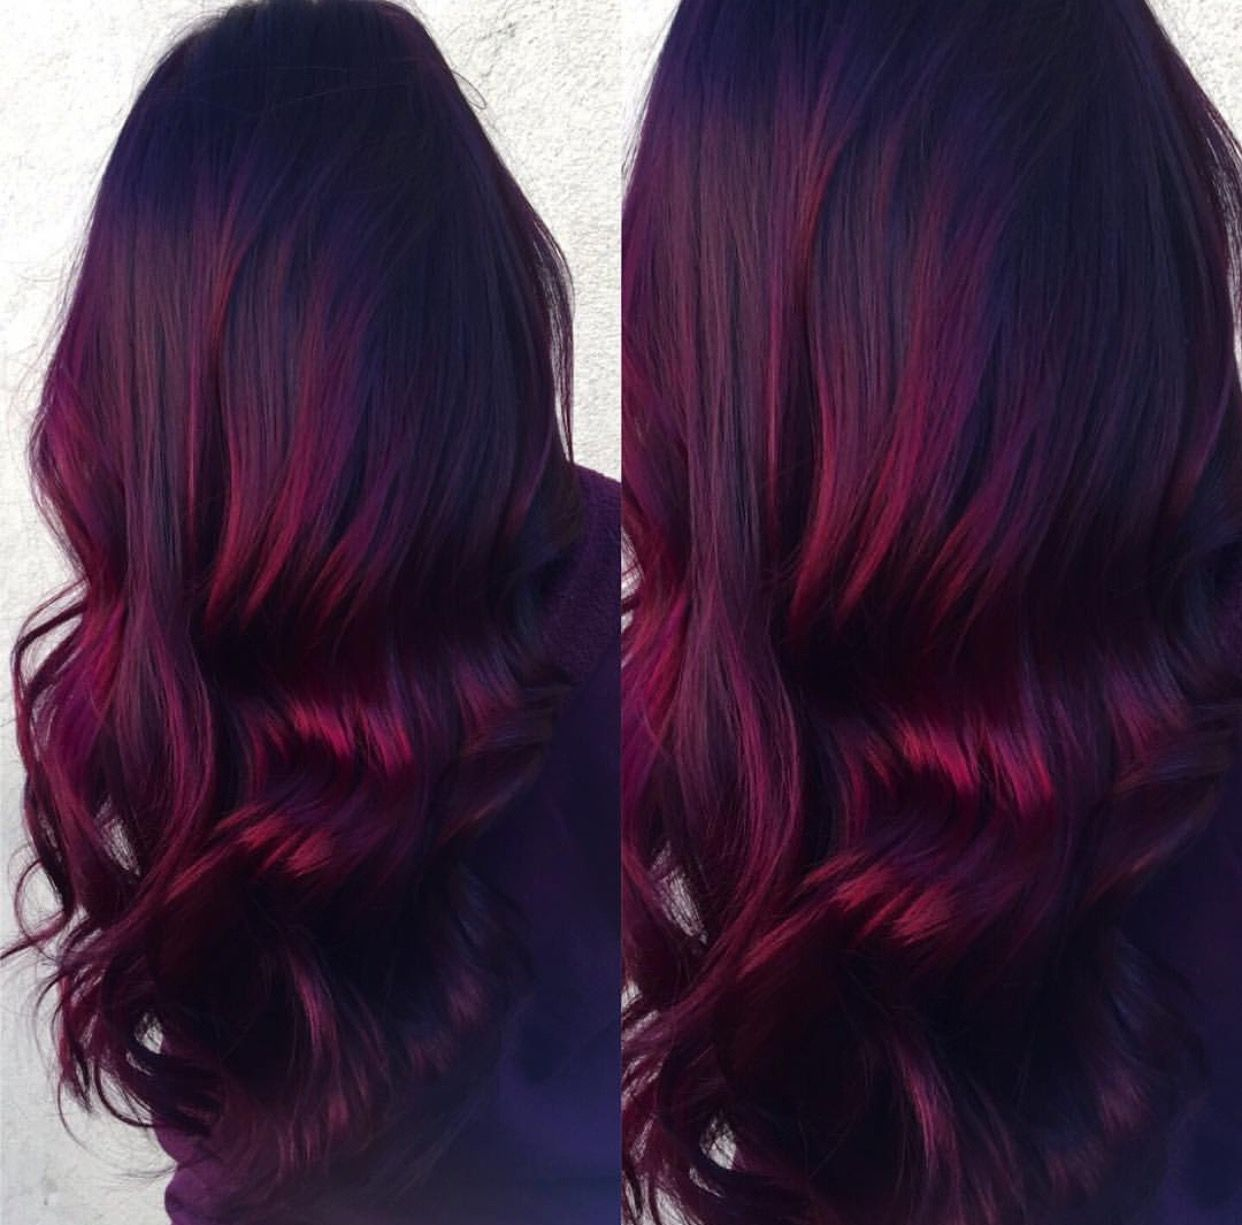 Red Velvet Balayage Dark Roots With Vibrant Burgundy Ends Done